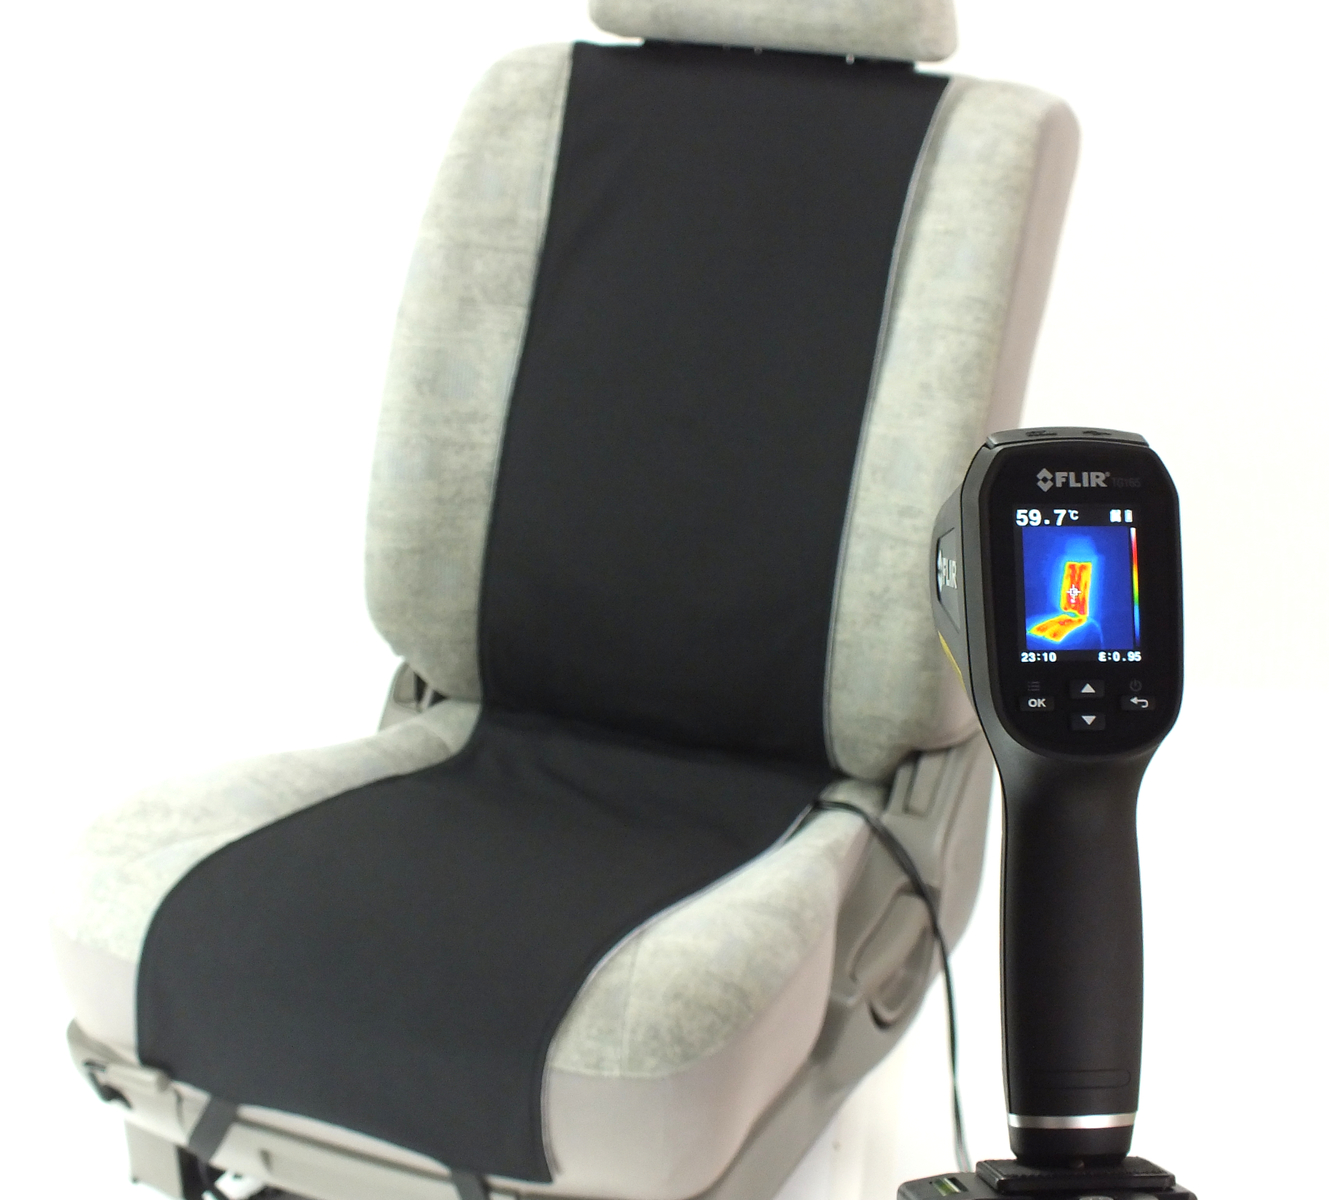 Stage 2 Car Seat With Base No Stage Temperature Regulation For Seat Heater Postscript Hot Seat Car Seat 速暖最高 65 Degrees 12v